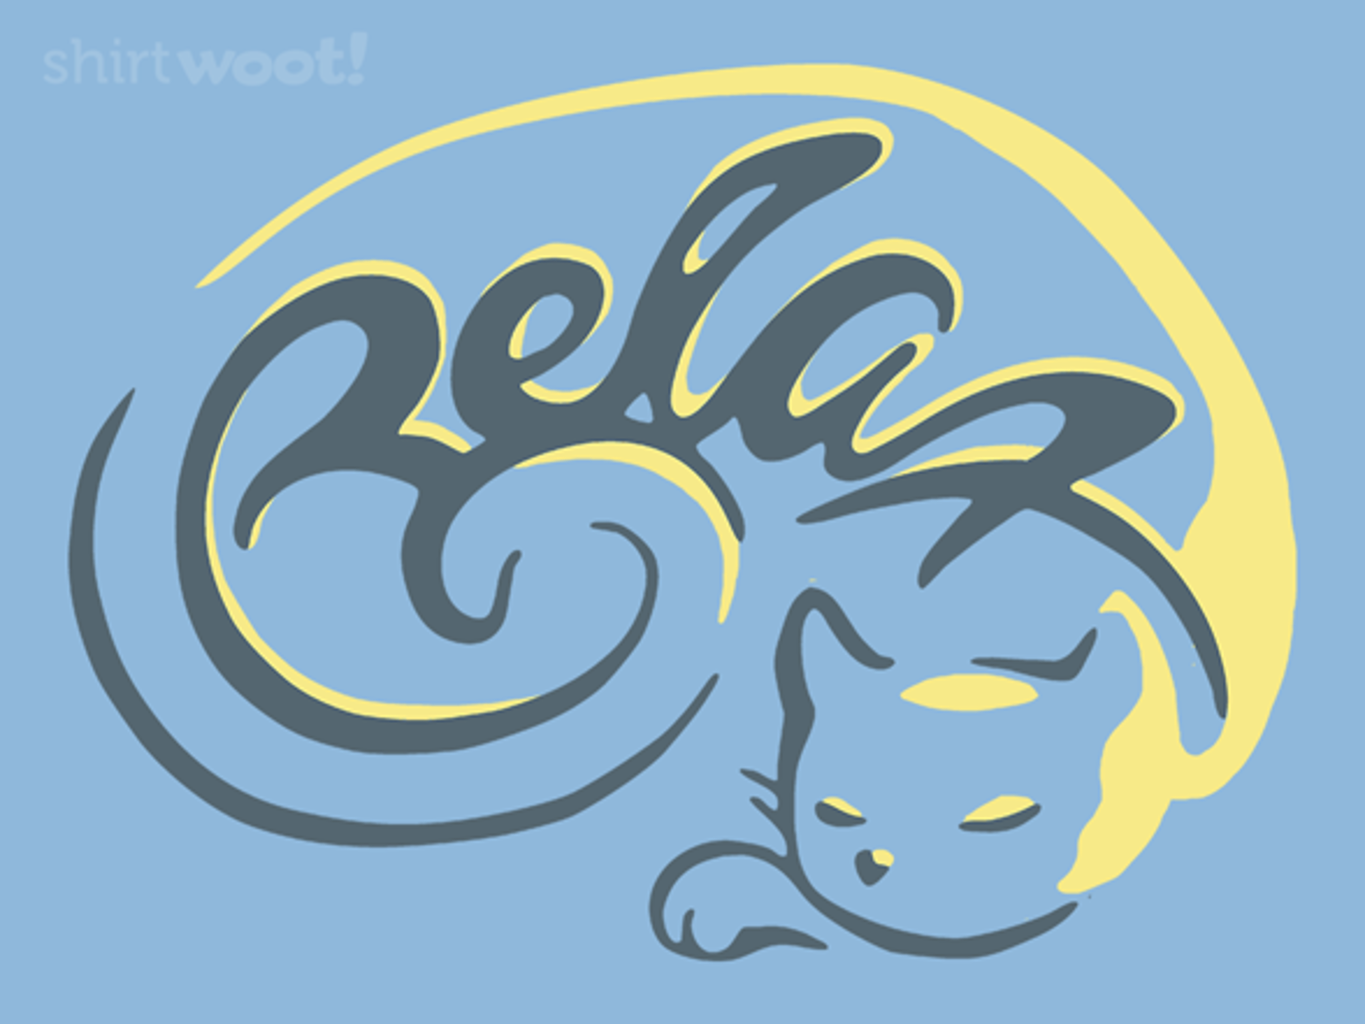 Woot!: Relax